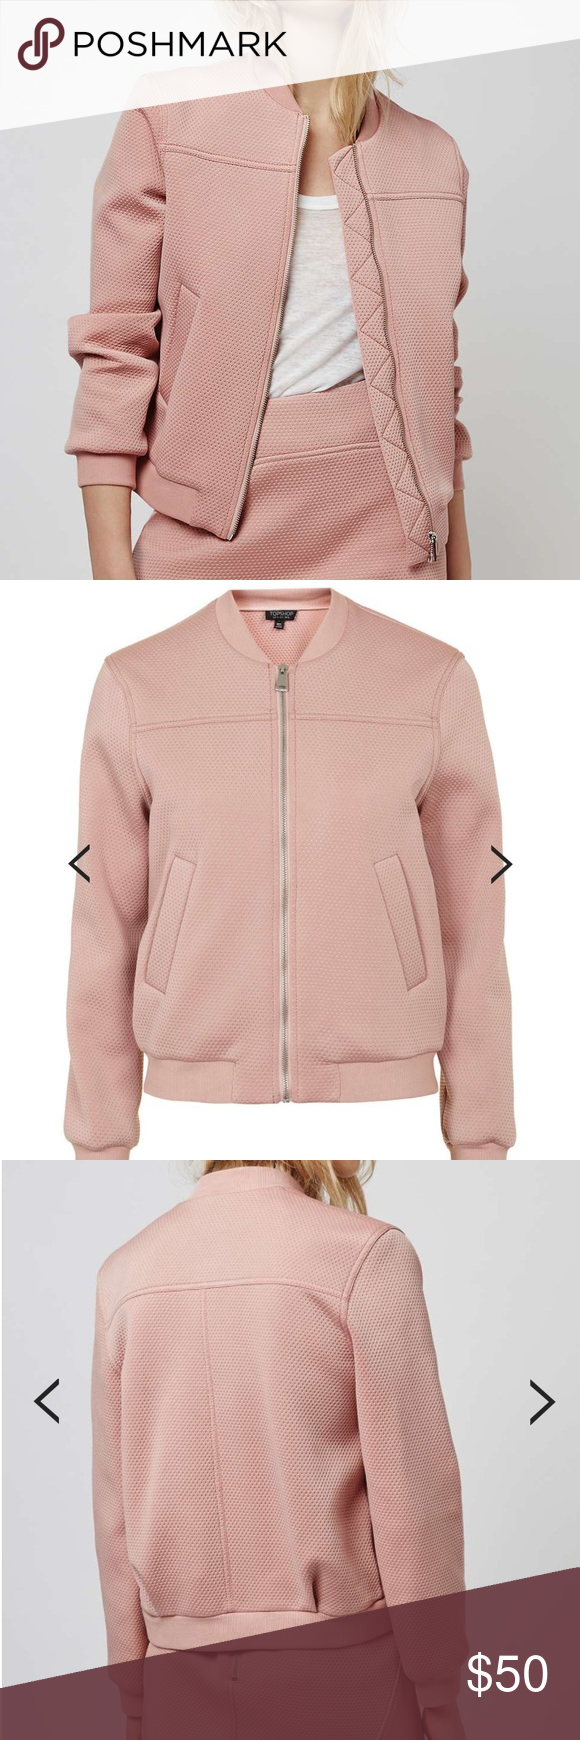 7a411140f Topshop Textured Bomber Gorgeous & fun Punch-Textured bomber Jacket ...